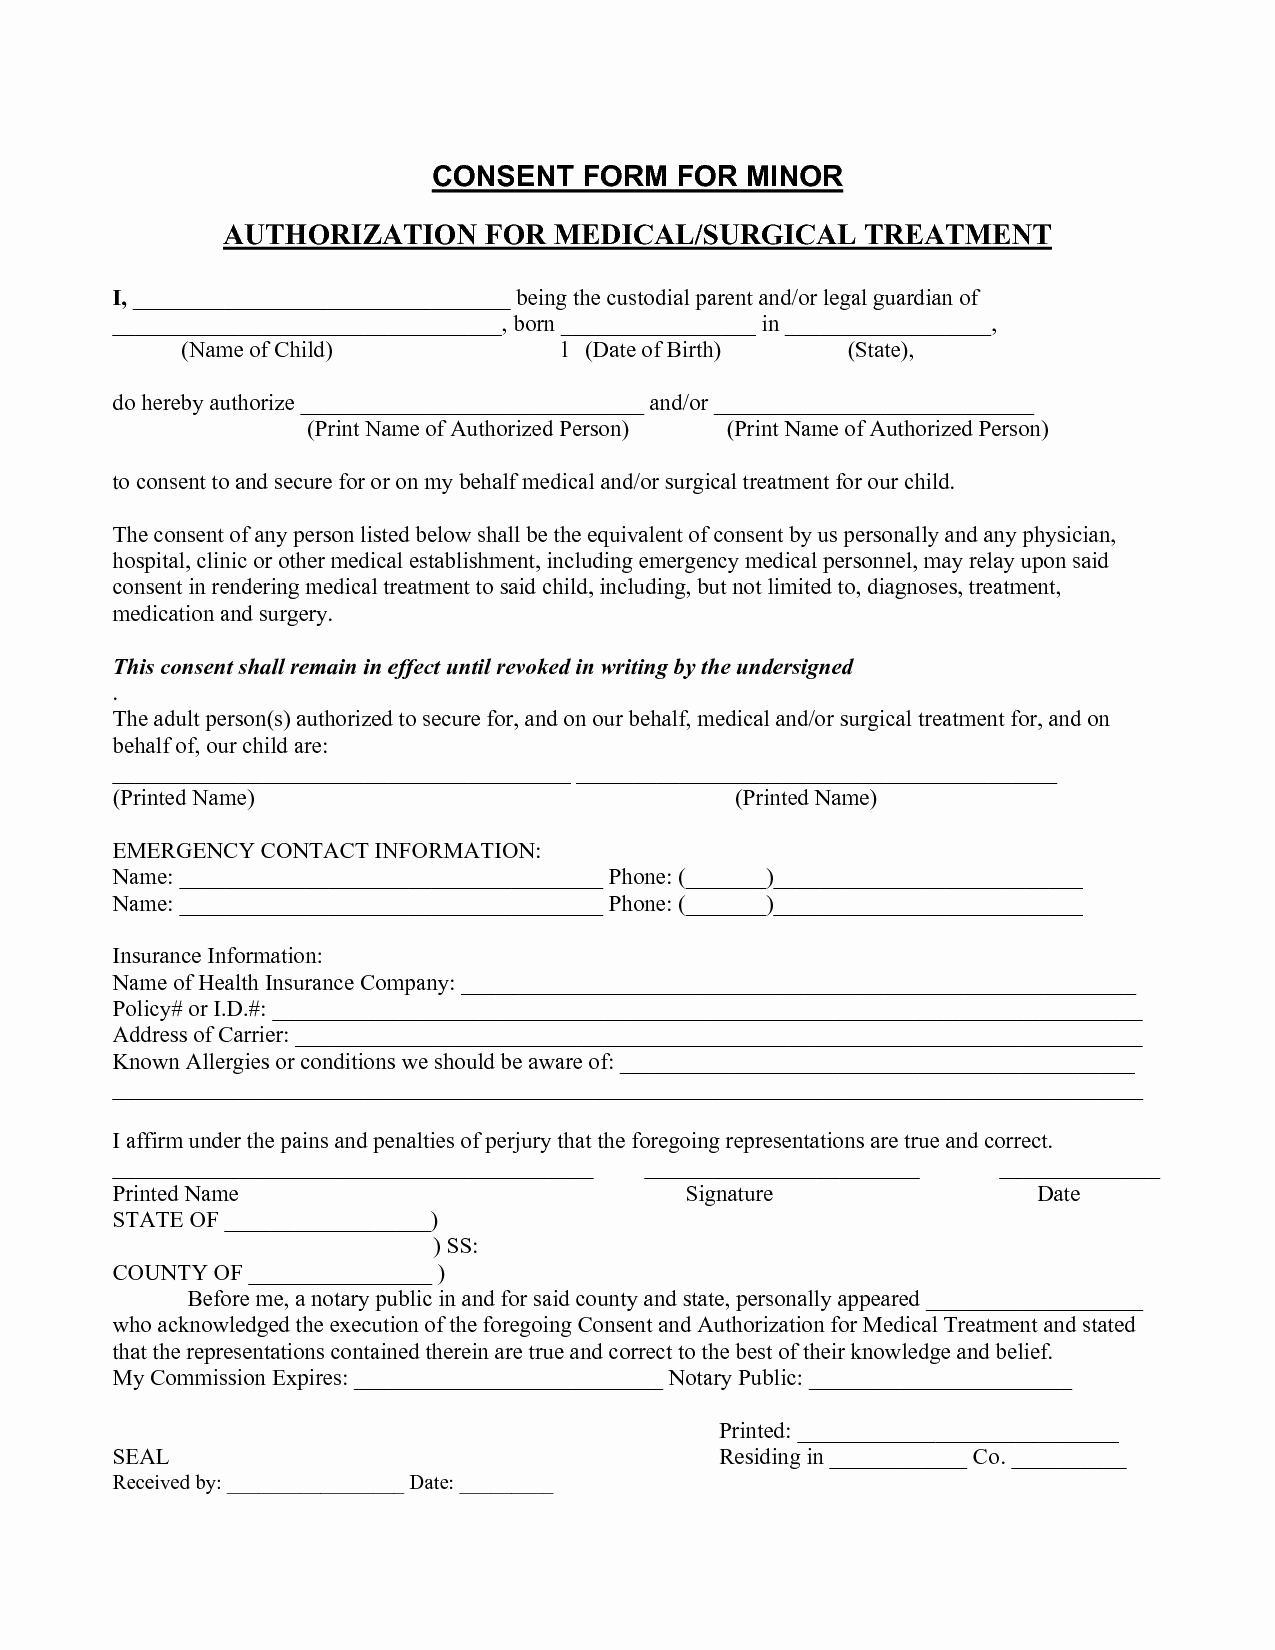 Medical Consent form Template Unique Medical Consent form Template